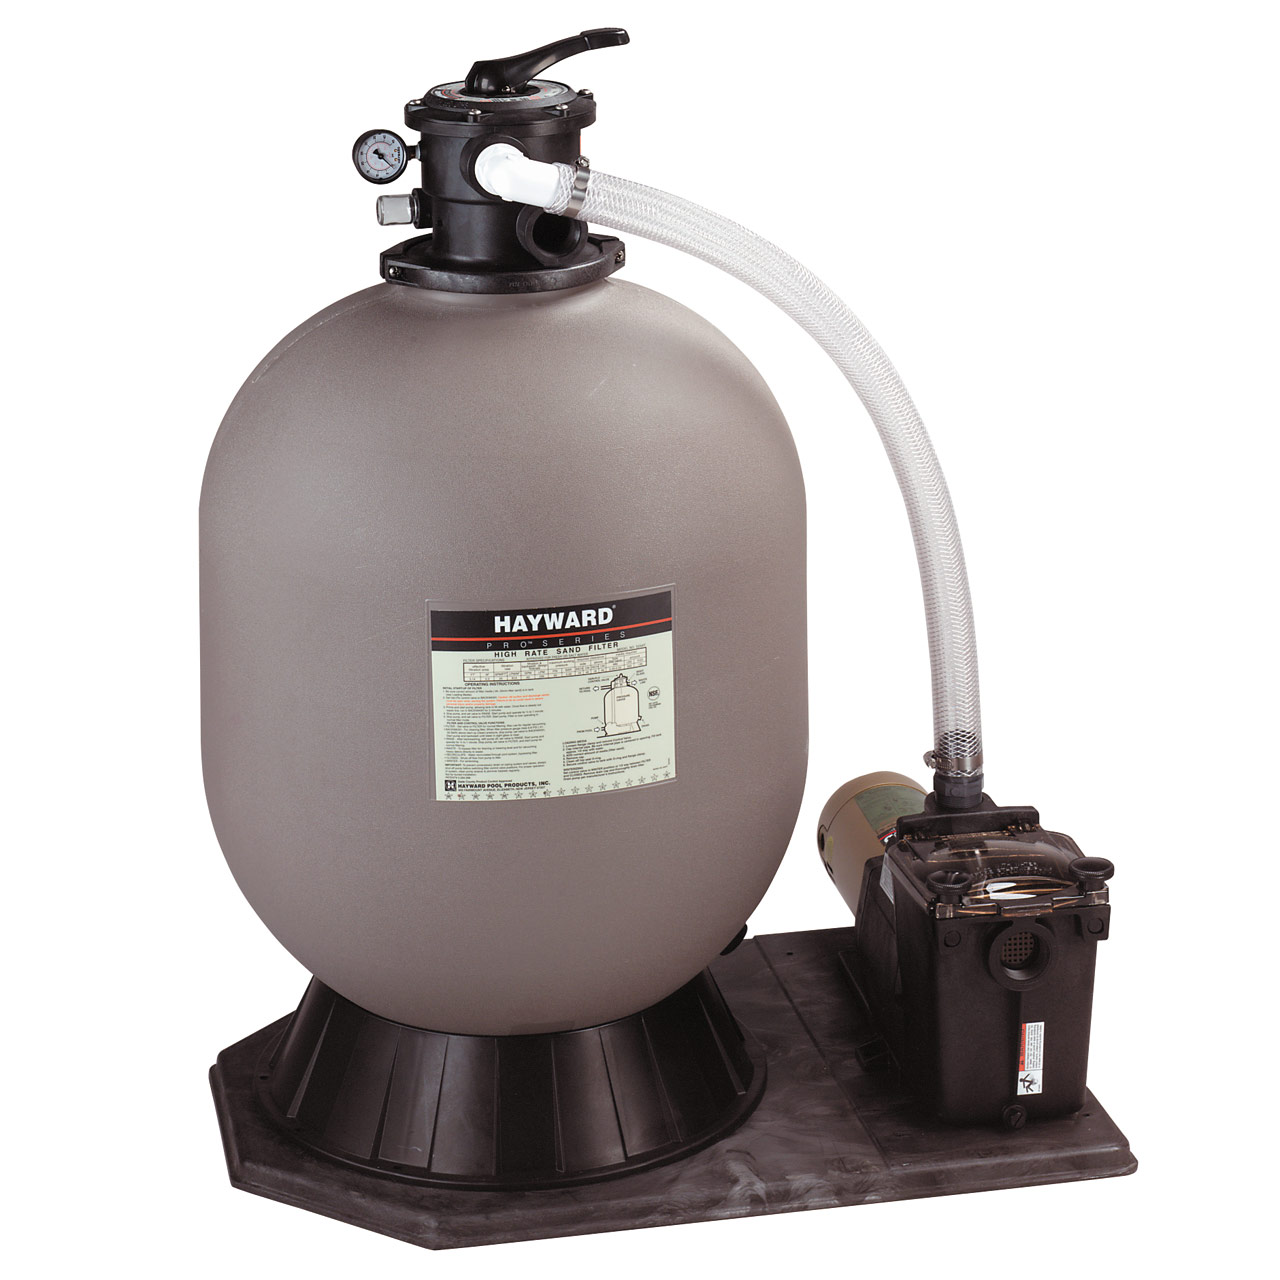 Hayward In-Ground Pro Series 24 Inch Sand Filter & 1 HP Super Pump